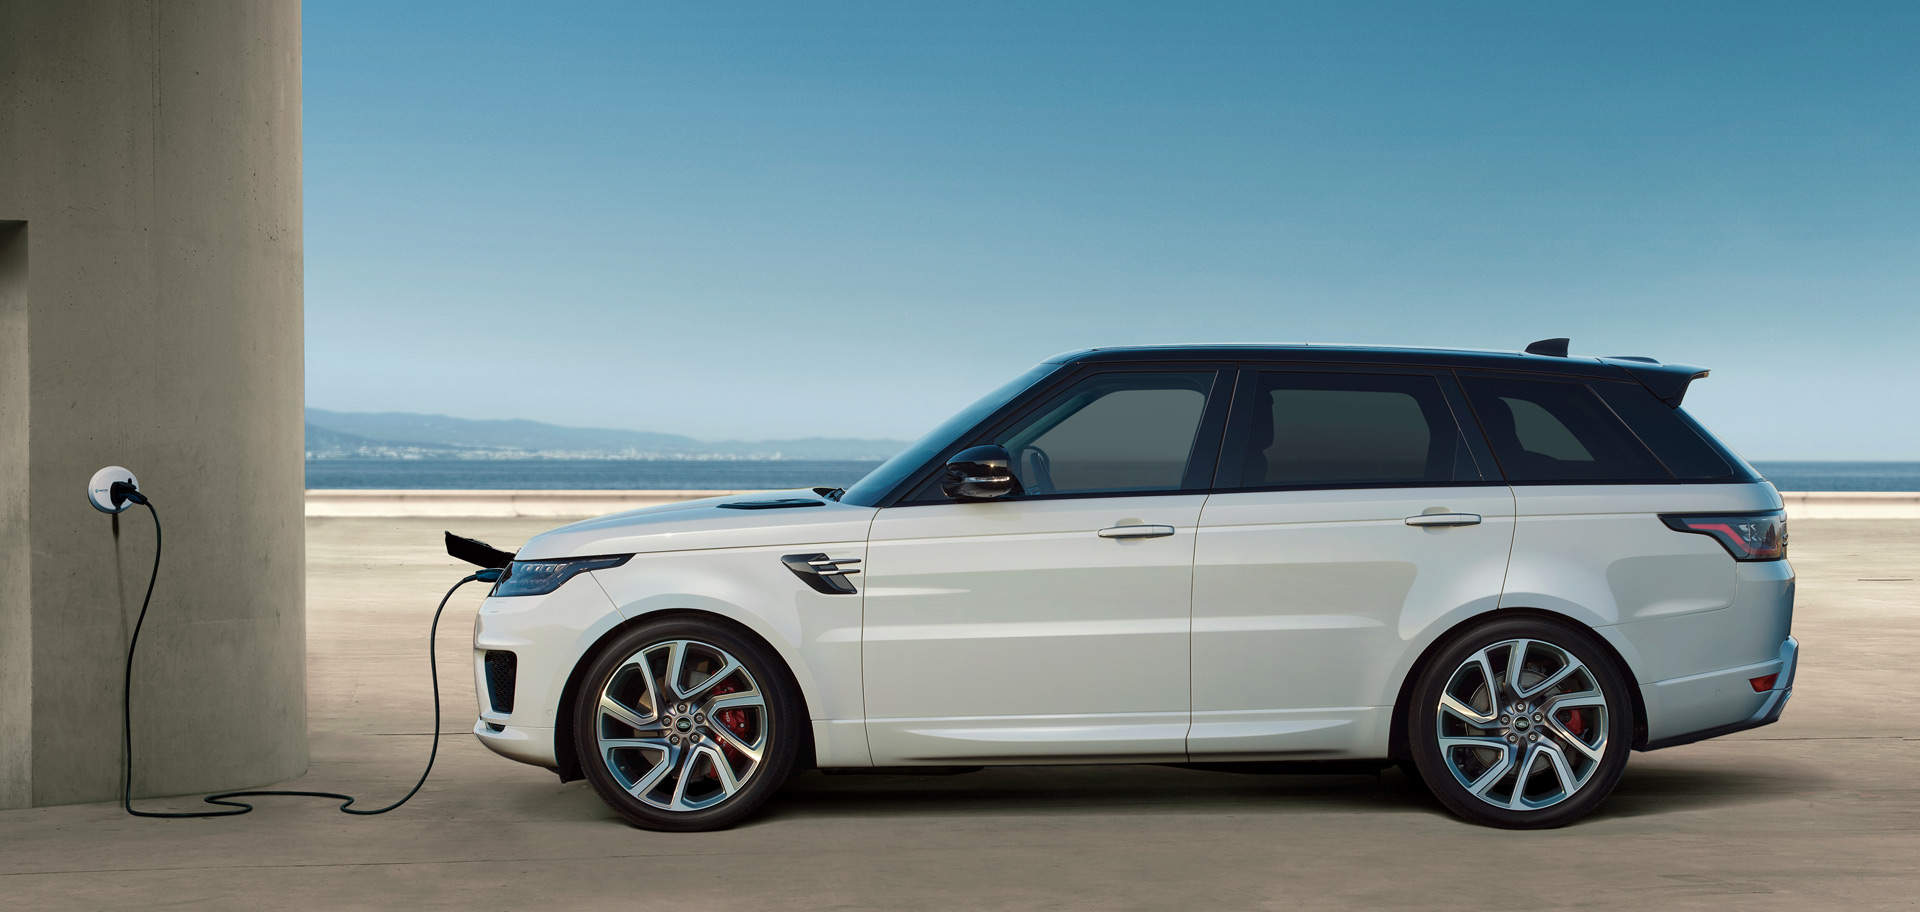 Cars For Sale Los Angeles >> 2019 Land Rover Range Rover Sport P400e plug-in hybrid first look